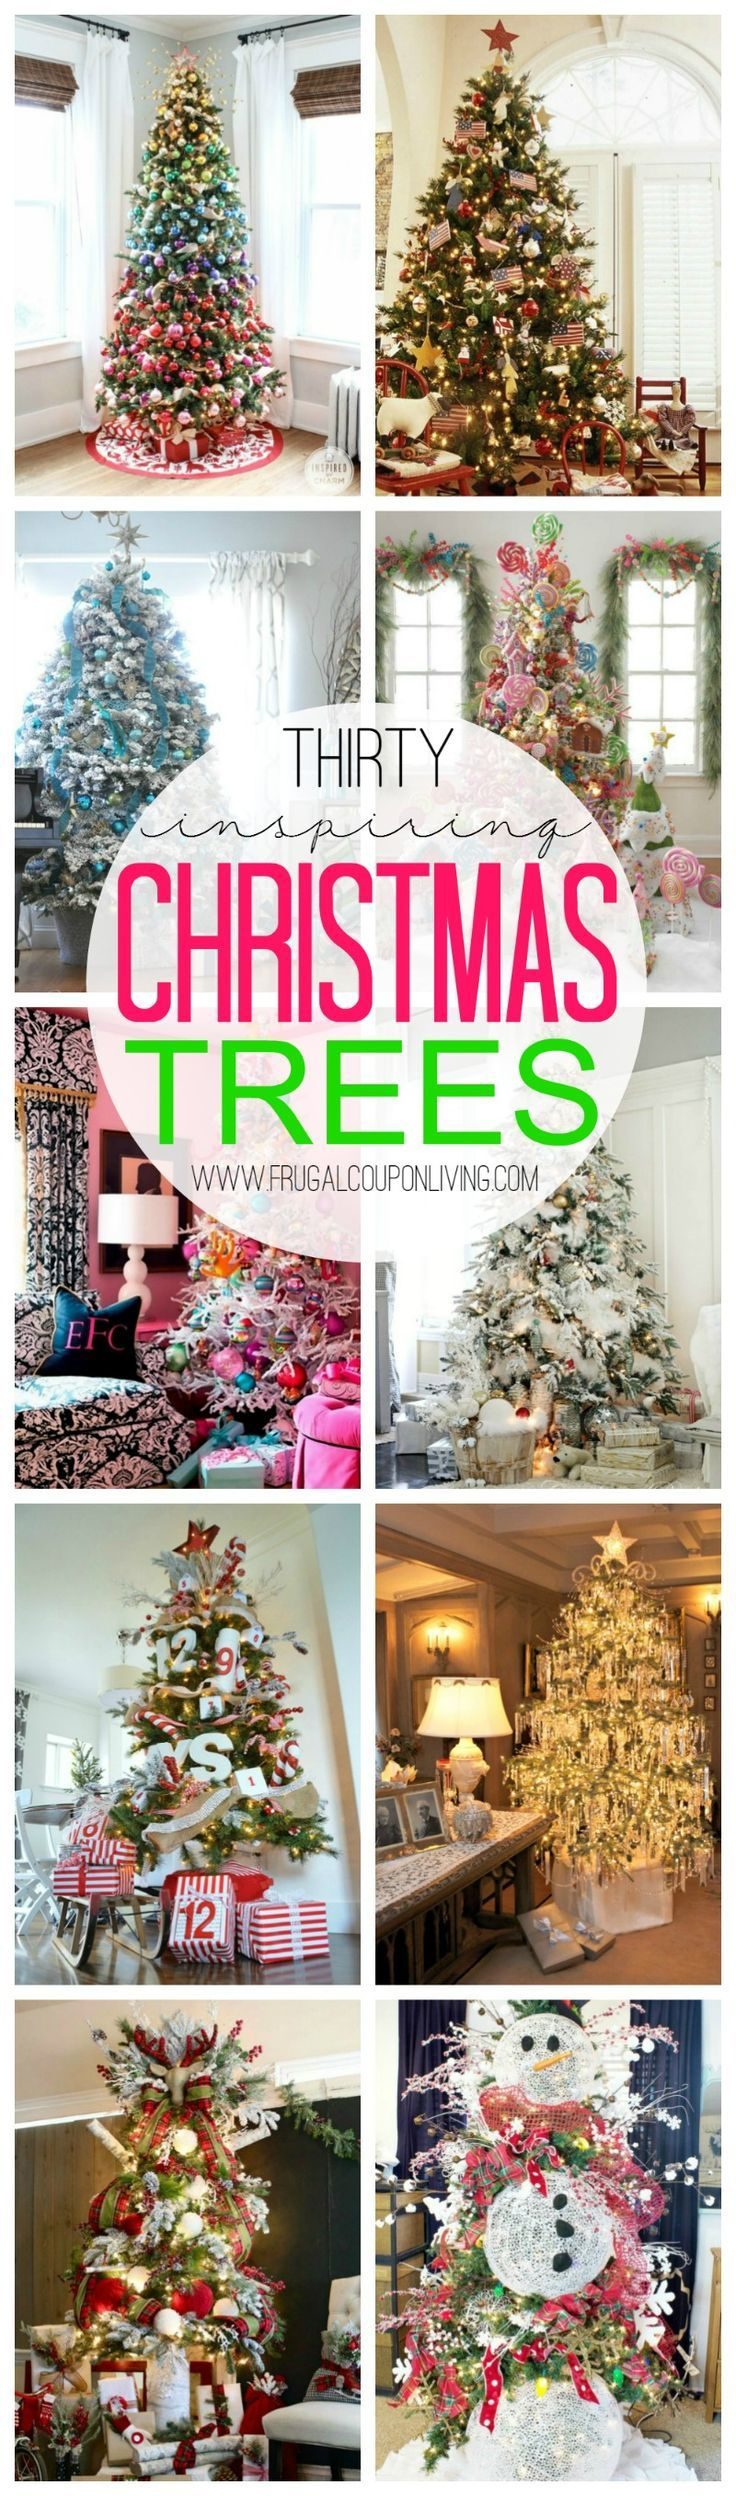 30 Inspiring Christmas Tree Ideas on Frugal Coupon Living - Christmas Treescapes, Christmas Decorating Ideas, Unique Christmas Trees, Original Christmas Trees and more!